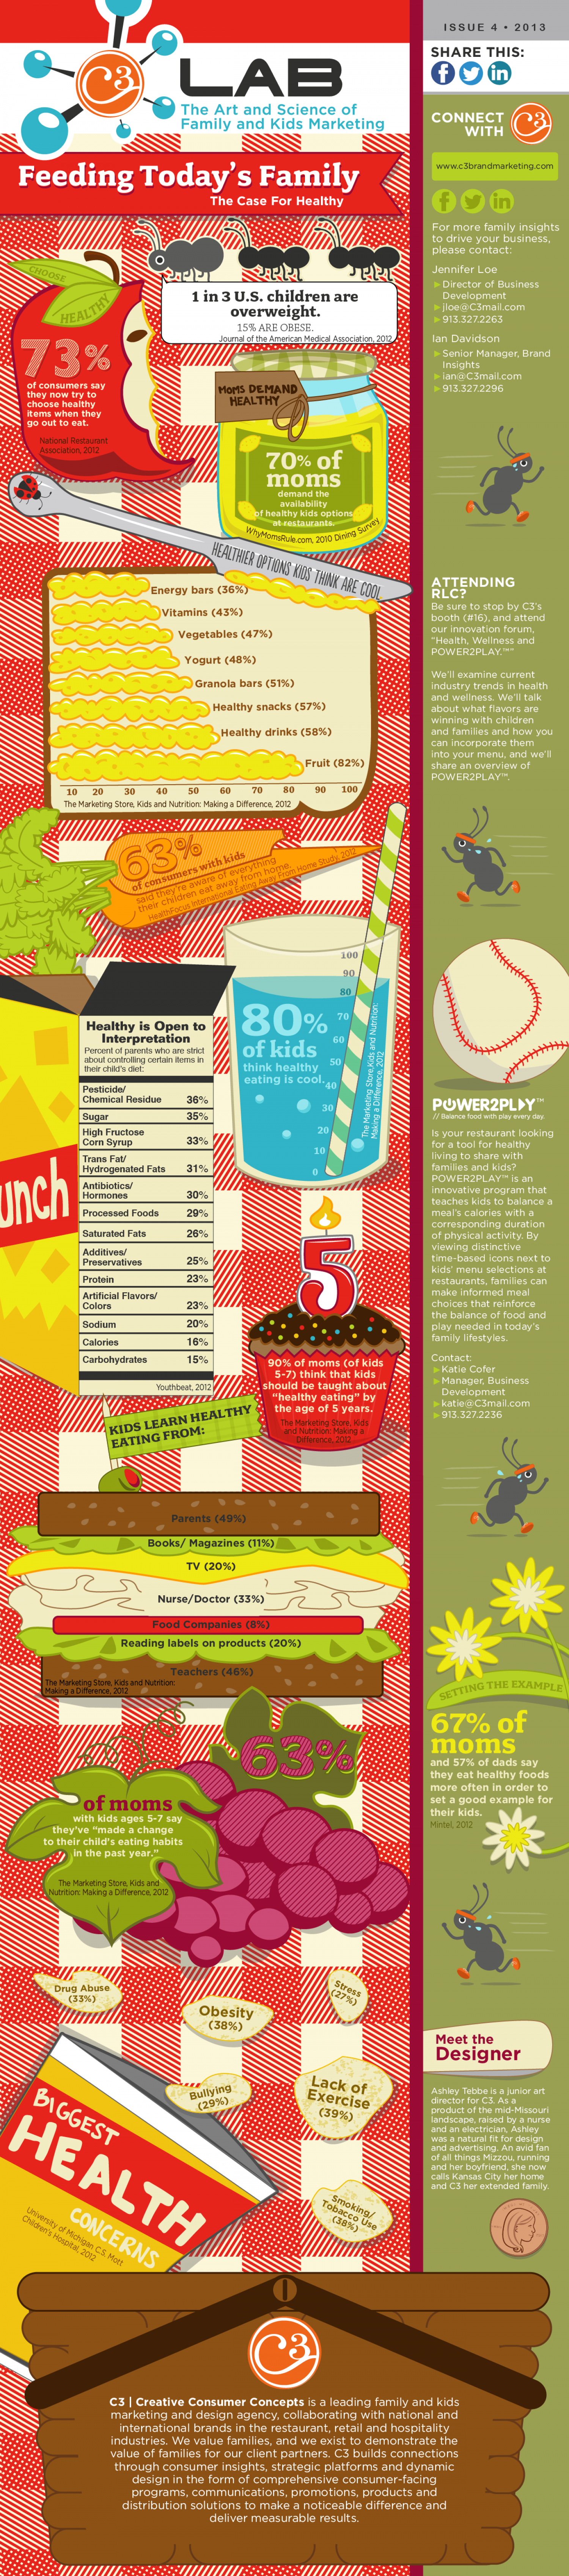 Feeding Today's Family: The Case For Healthy Infographic